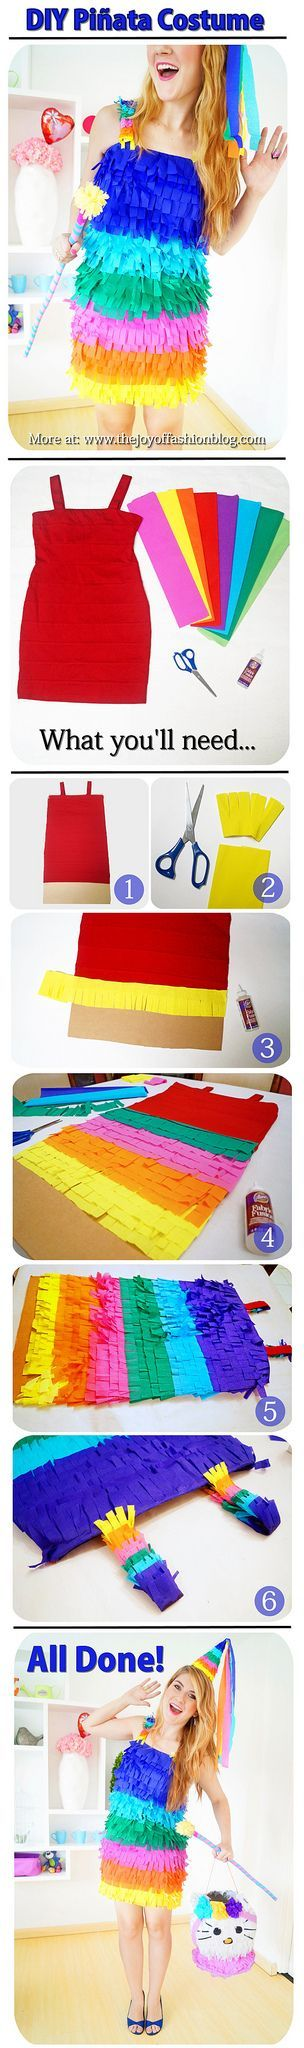 Easy Piñata Costume #halloween #costume #diy #craft                                                                                                                                                      More